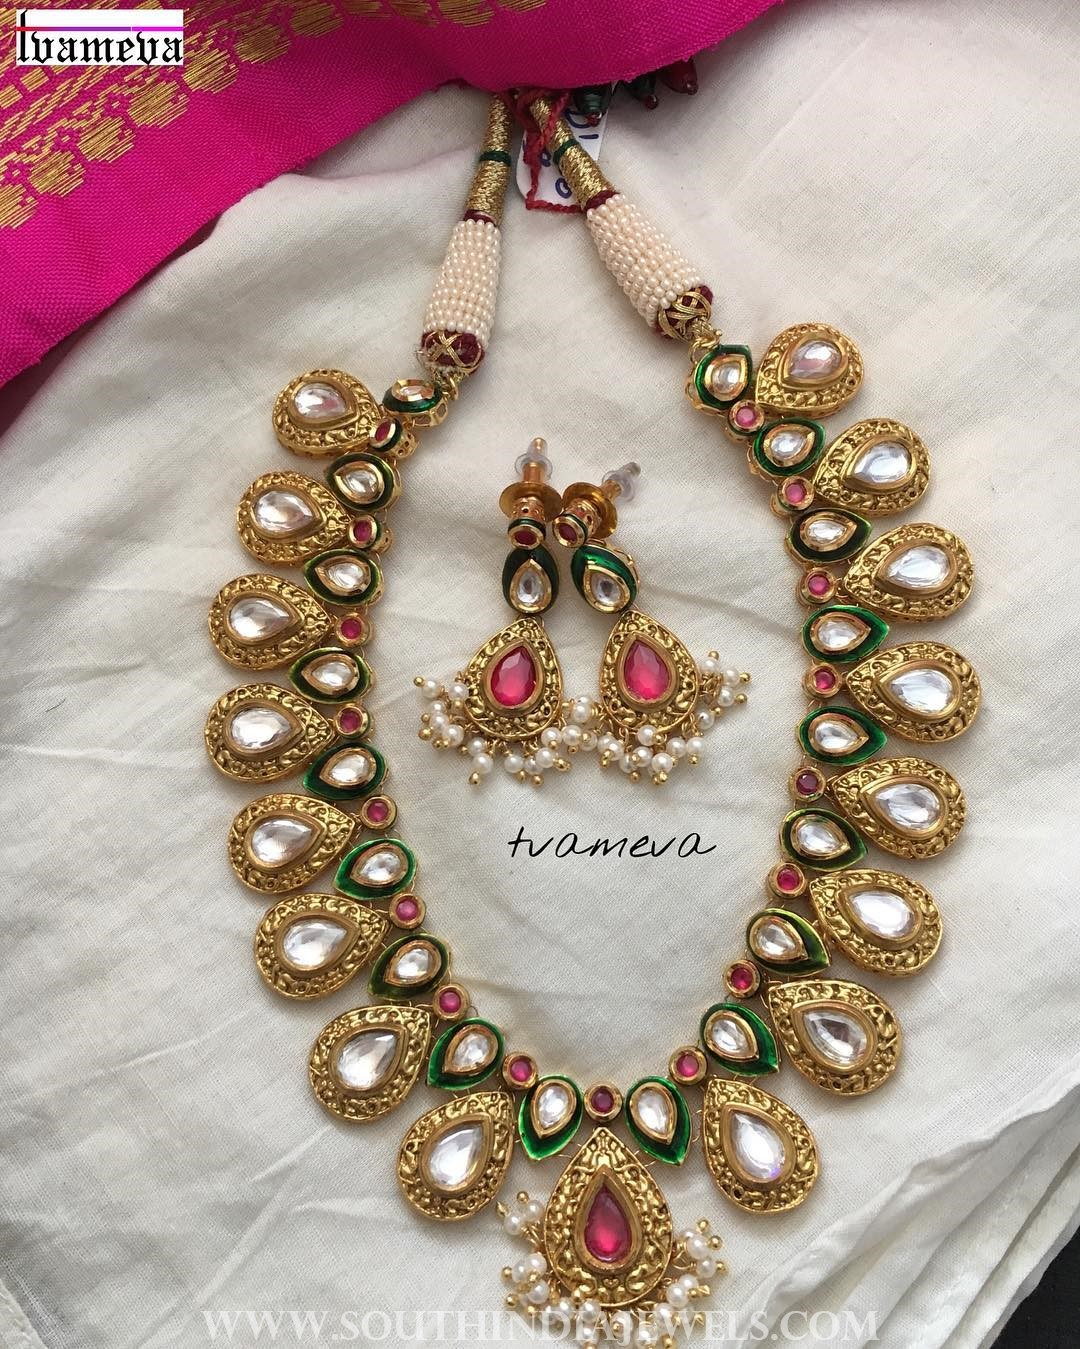 Kundan short necklace tvameva